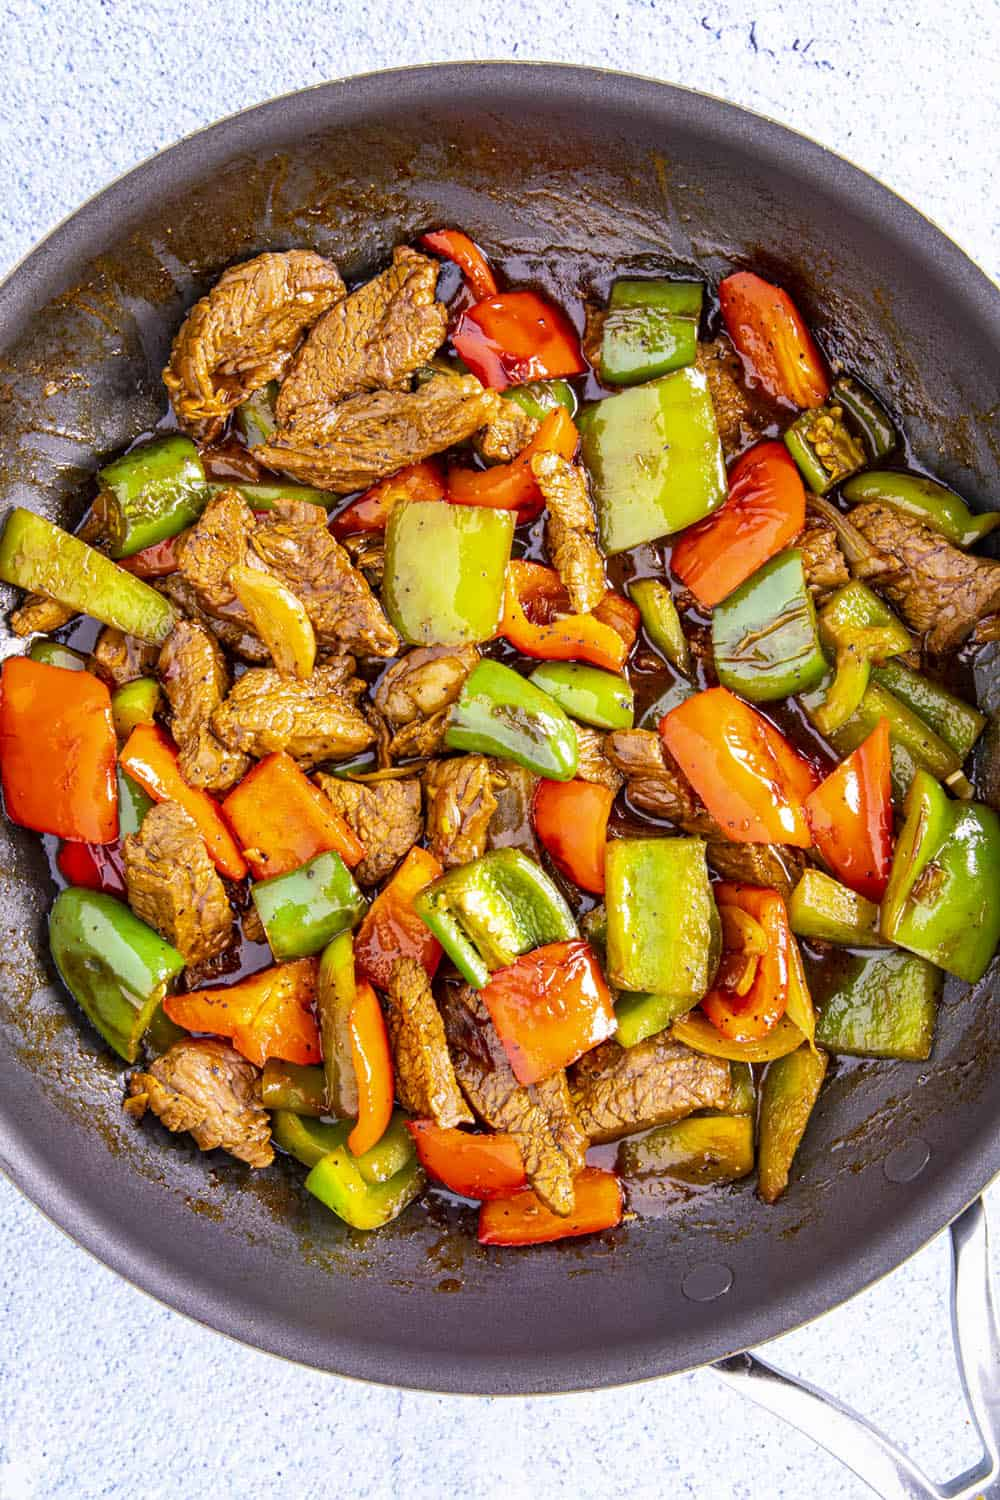 Combining the steak with peppers and sauce in a hot pan